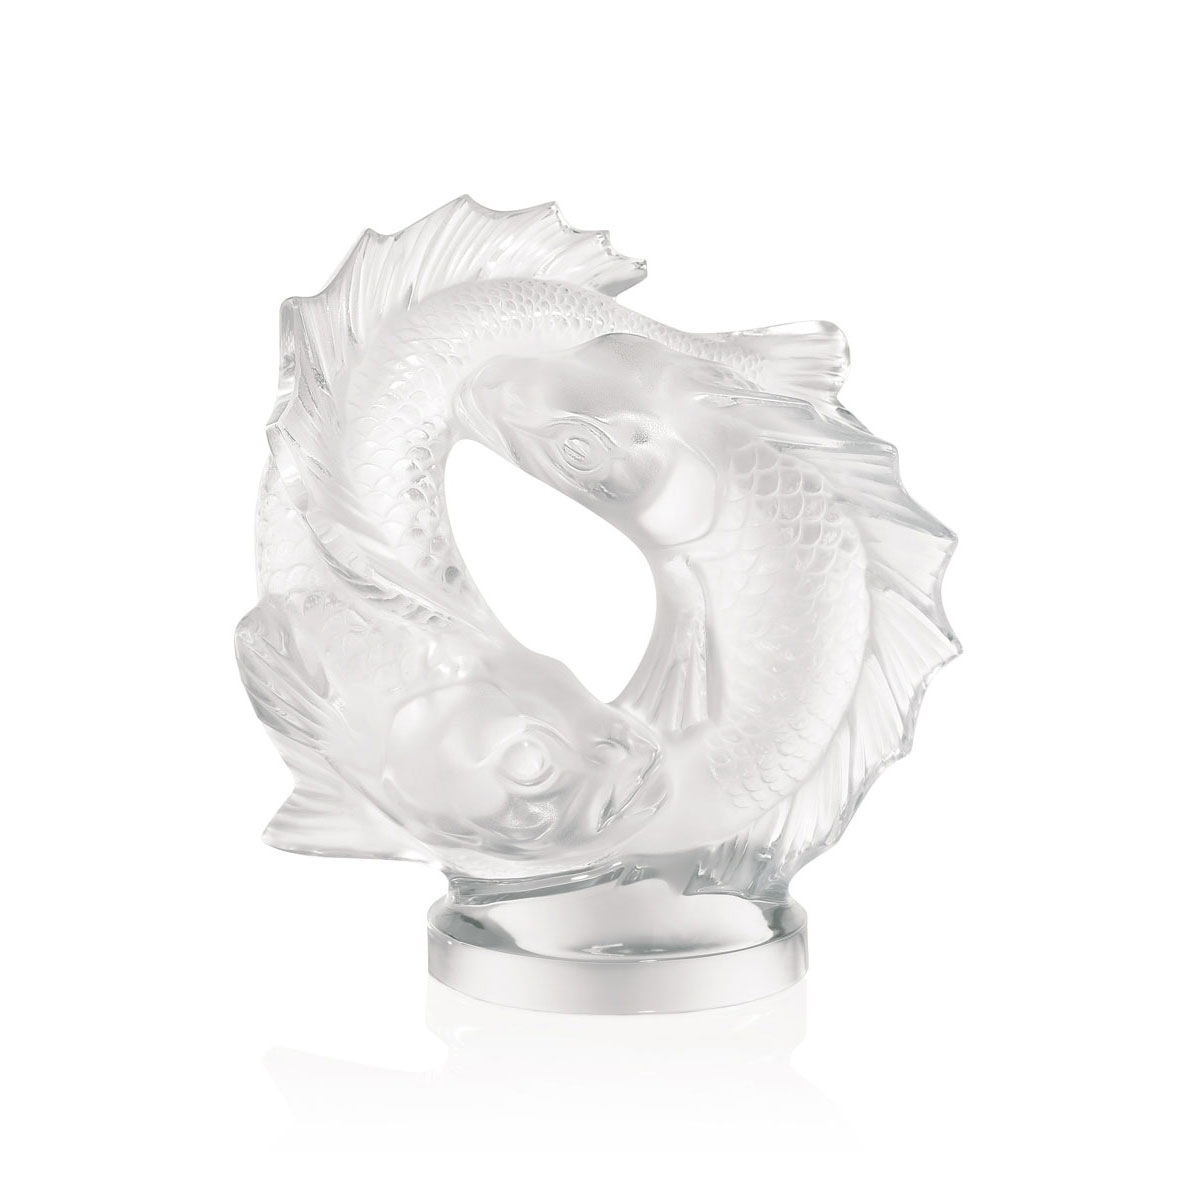 Lalique Crystal, Double Fish Sculpture, Clear